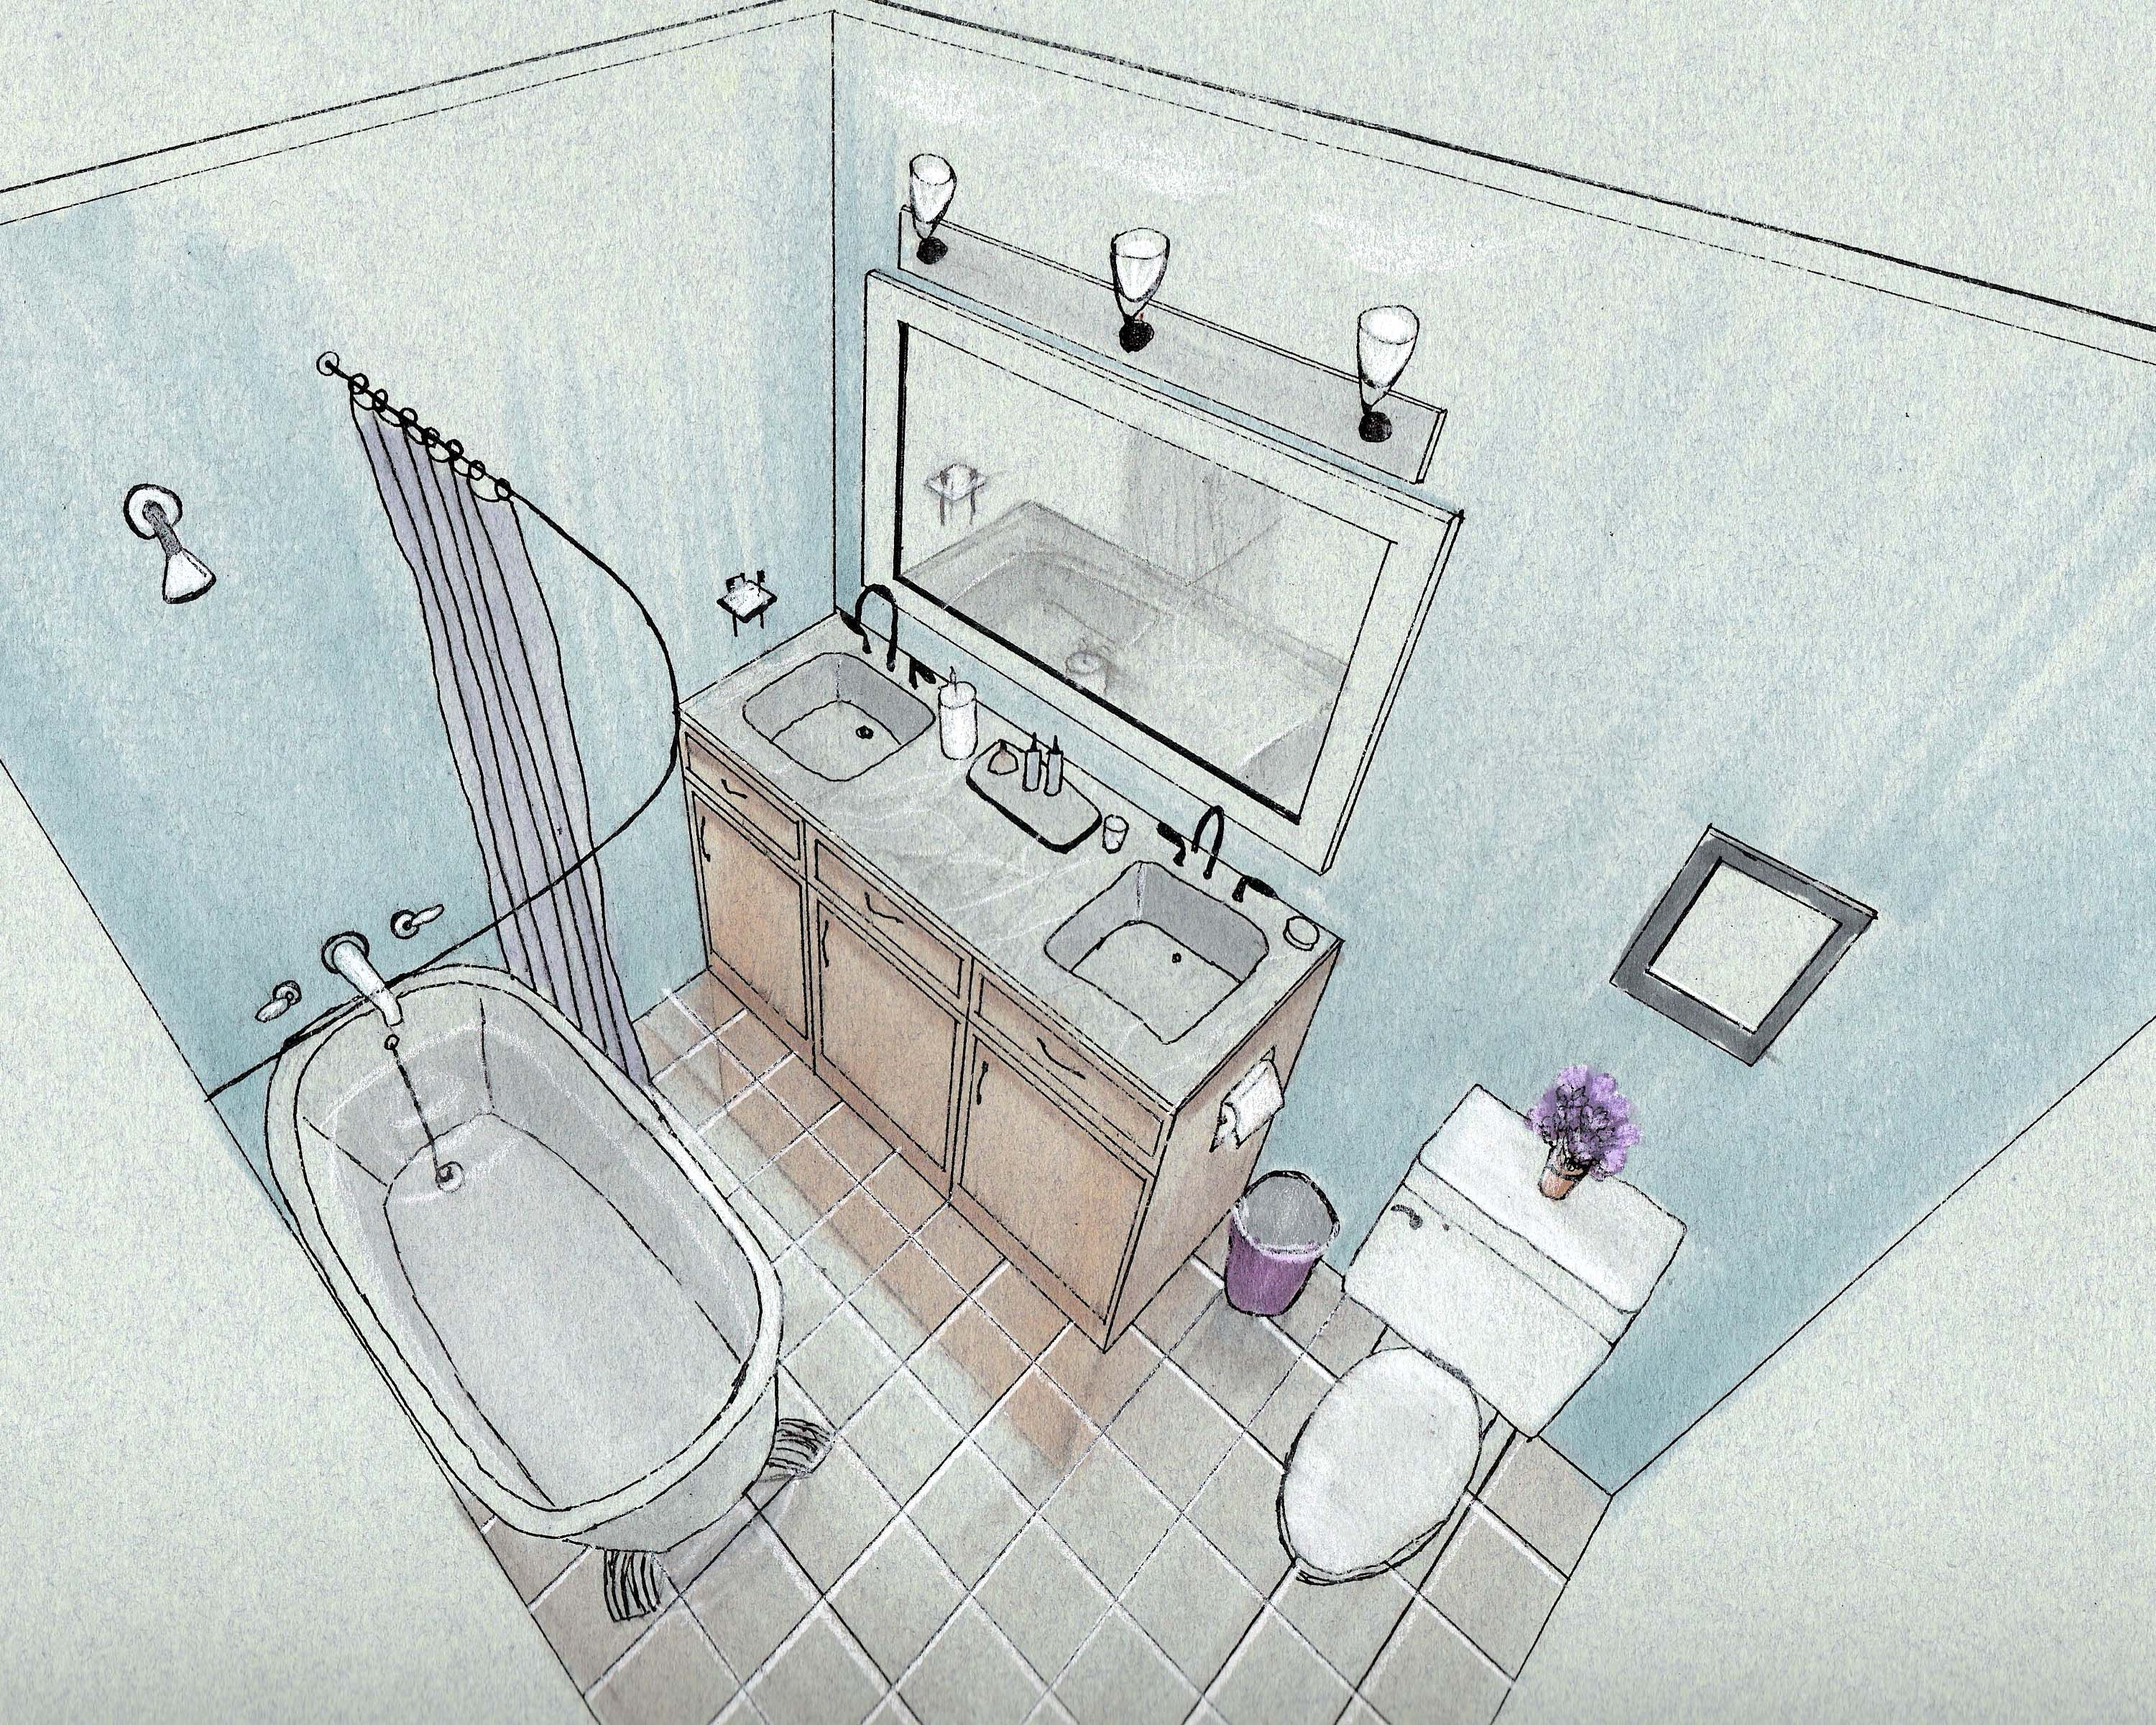 Bathroom drawing design - Bathroom Hand Rendering Hand Drawings Renderings